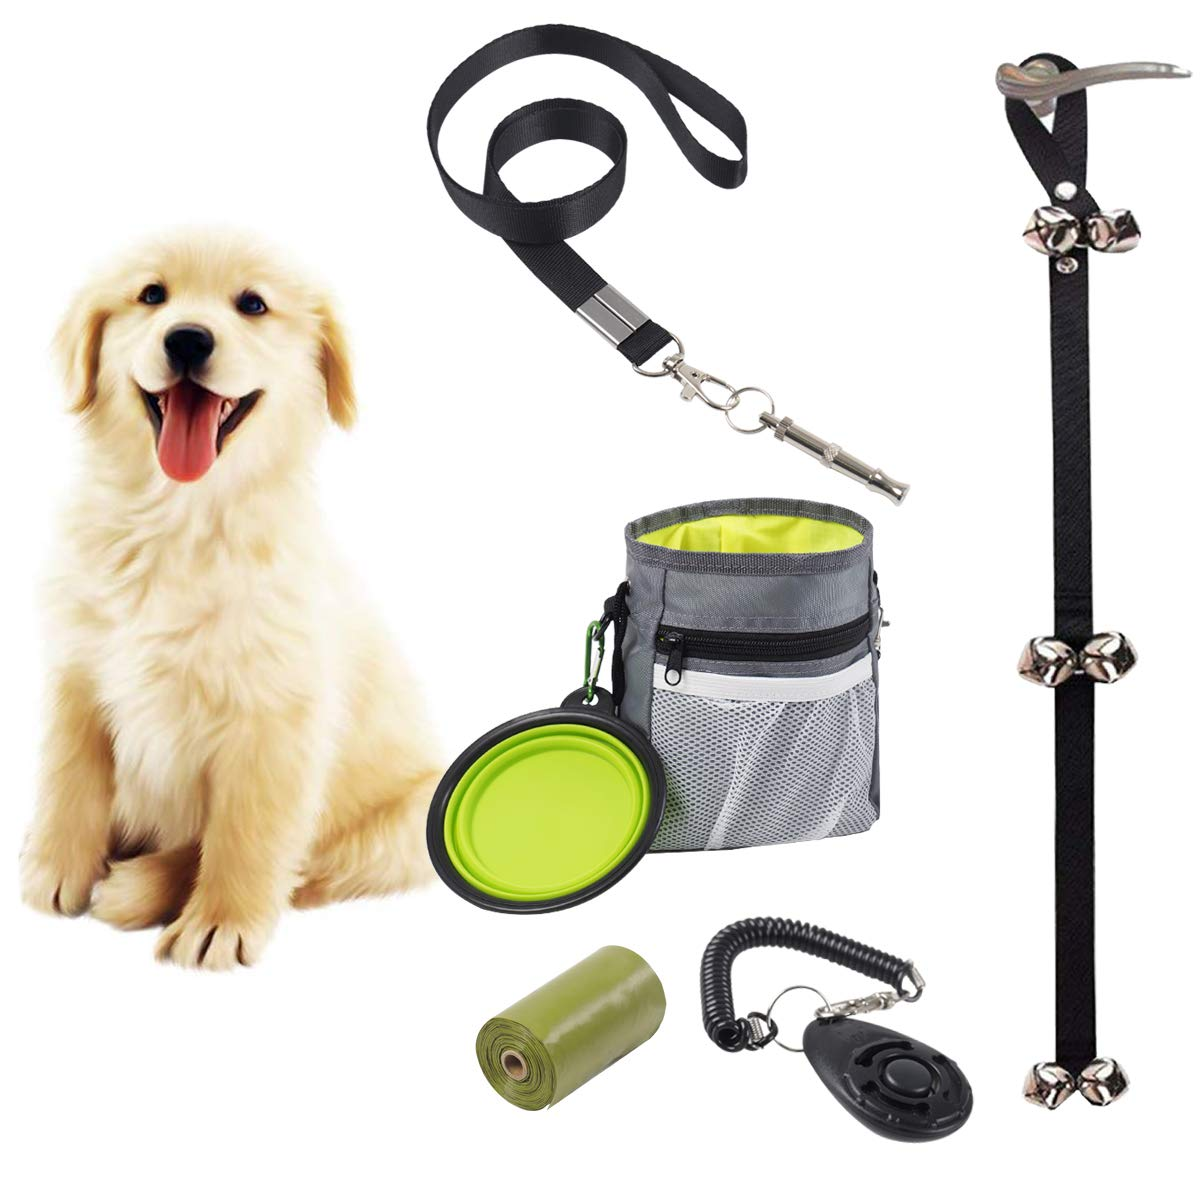 HOMFREEST Puppy Training Set with Dog Clicker, Dog Whistle, Training Doorbells, Dog Treat Training Pouch, Collapsible Bowl and Poop Bag, 6 in 1 Puppy Training for New Pet Owners by HOMFREEST